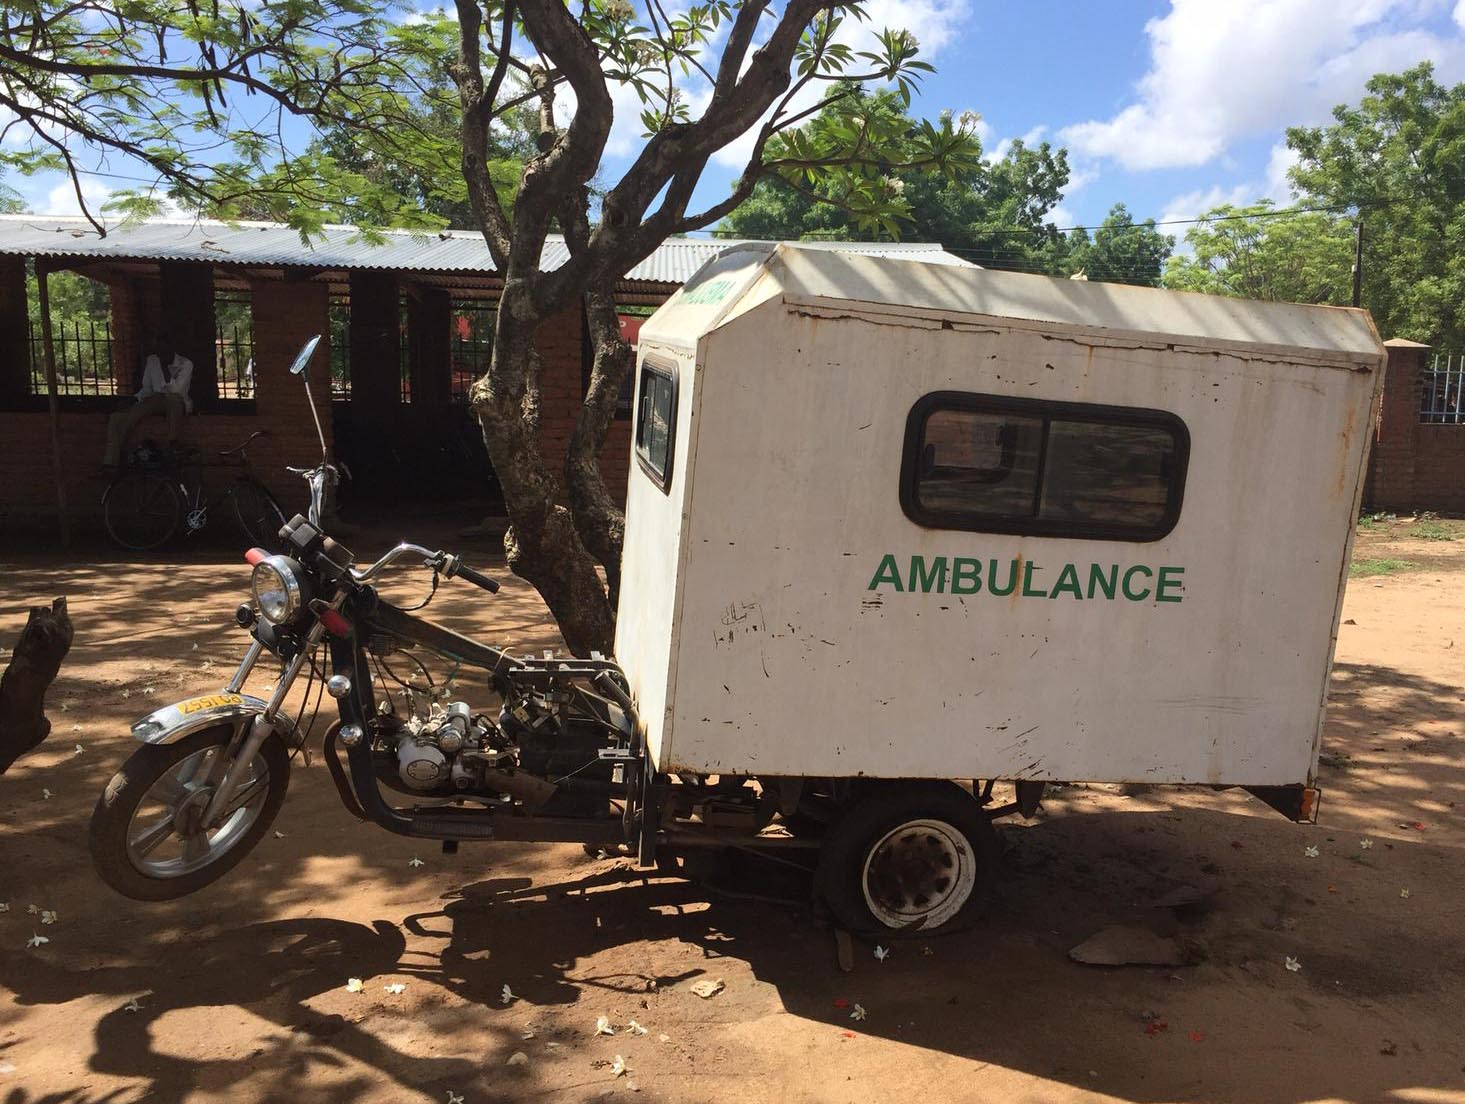 A WhatsApp group for surgical advice is reducing the number of patients needing to be transferred between hospitals in Malawi. Image credit - Jakub Gajewski